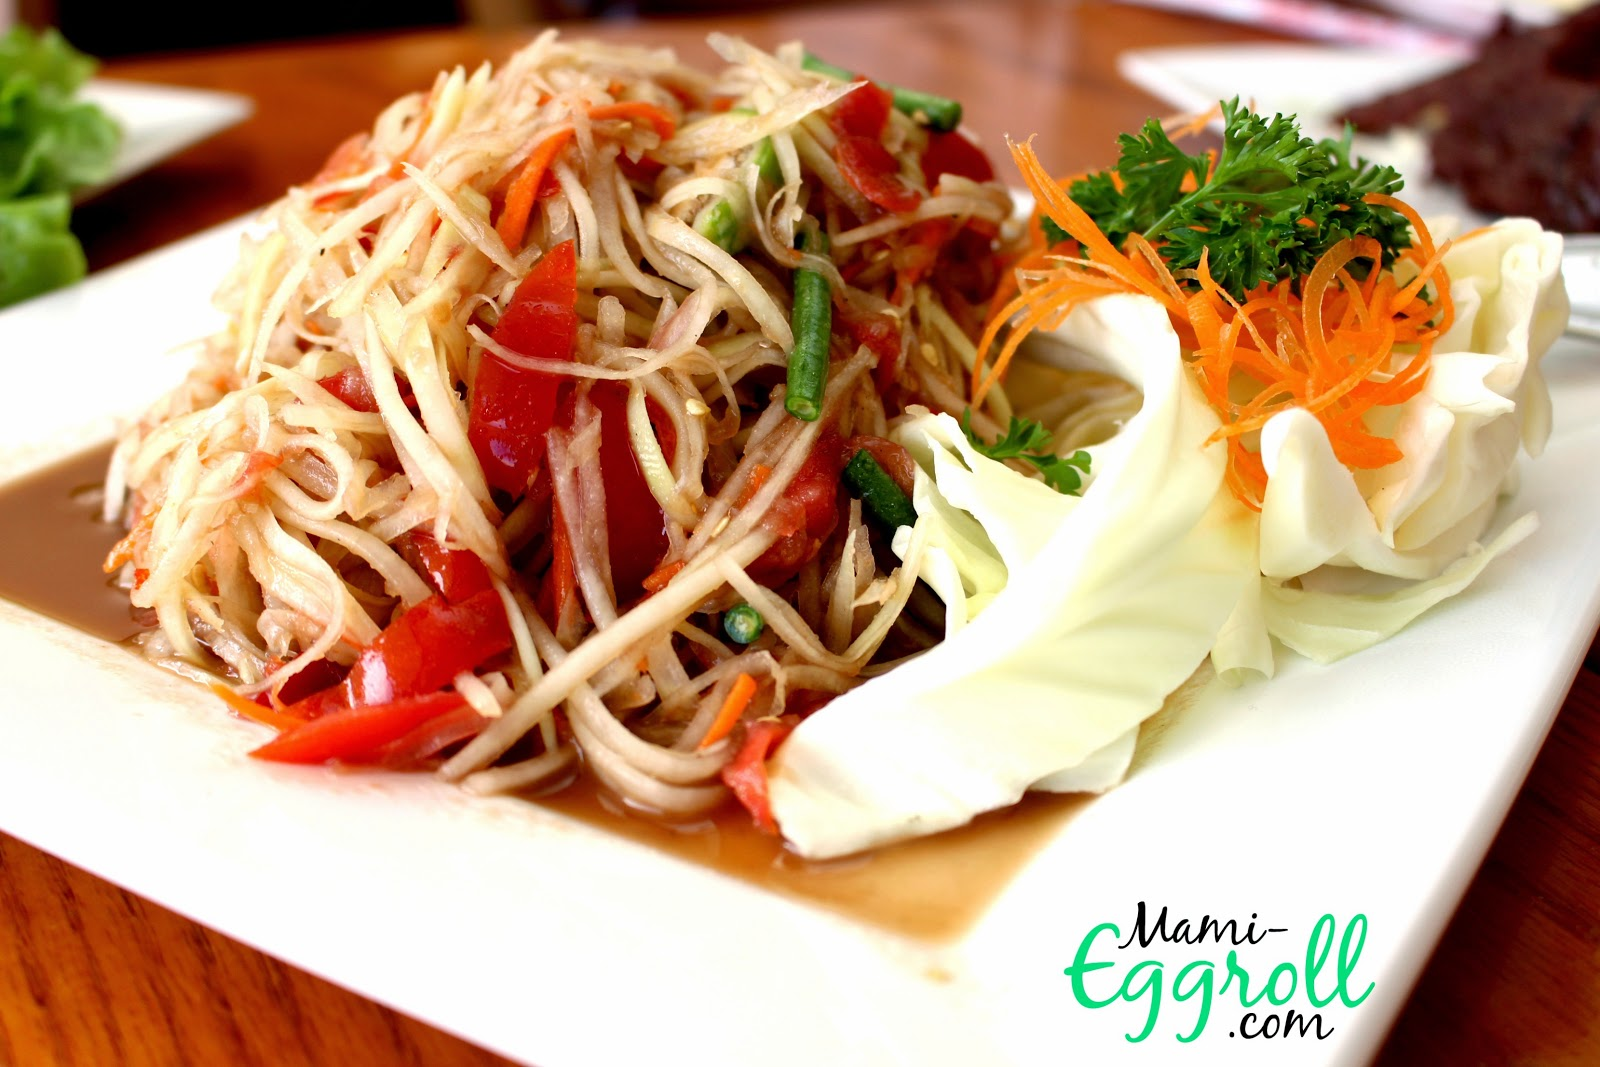 Mami eggroll new thai and lao cuisine at lanxang star for 7 star thai cuisine